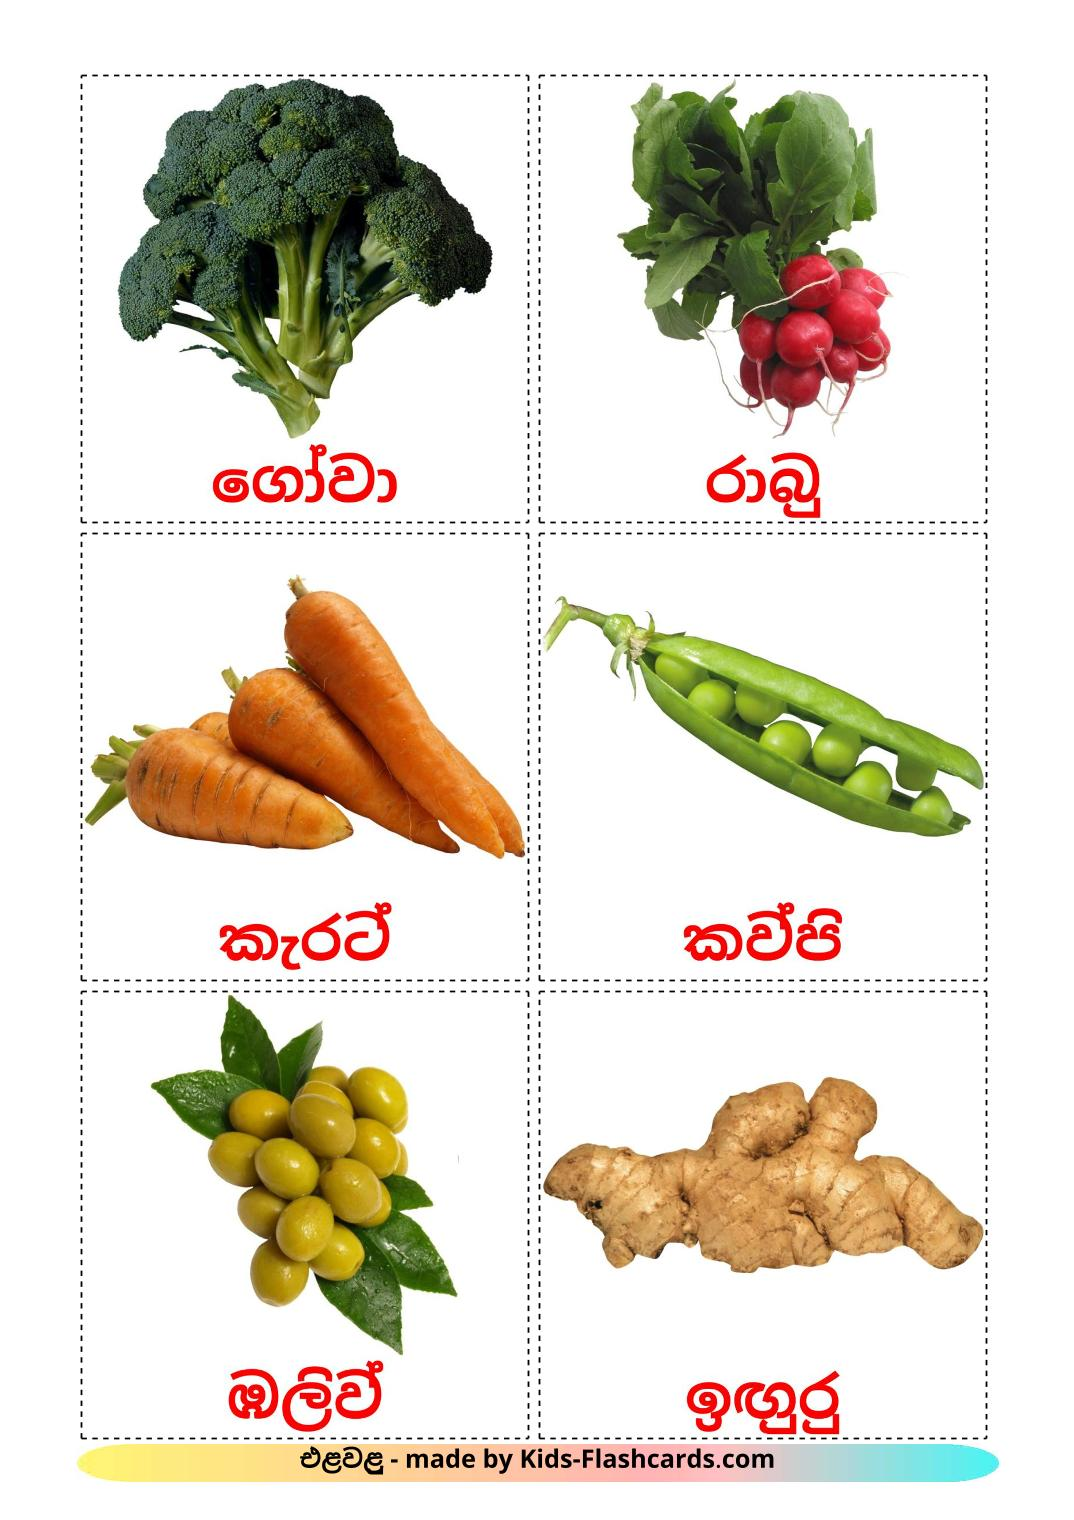 Vegetables - 29 Free Printable sinhala Flashcards